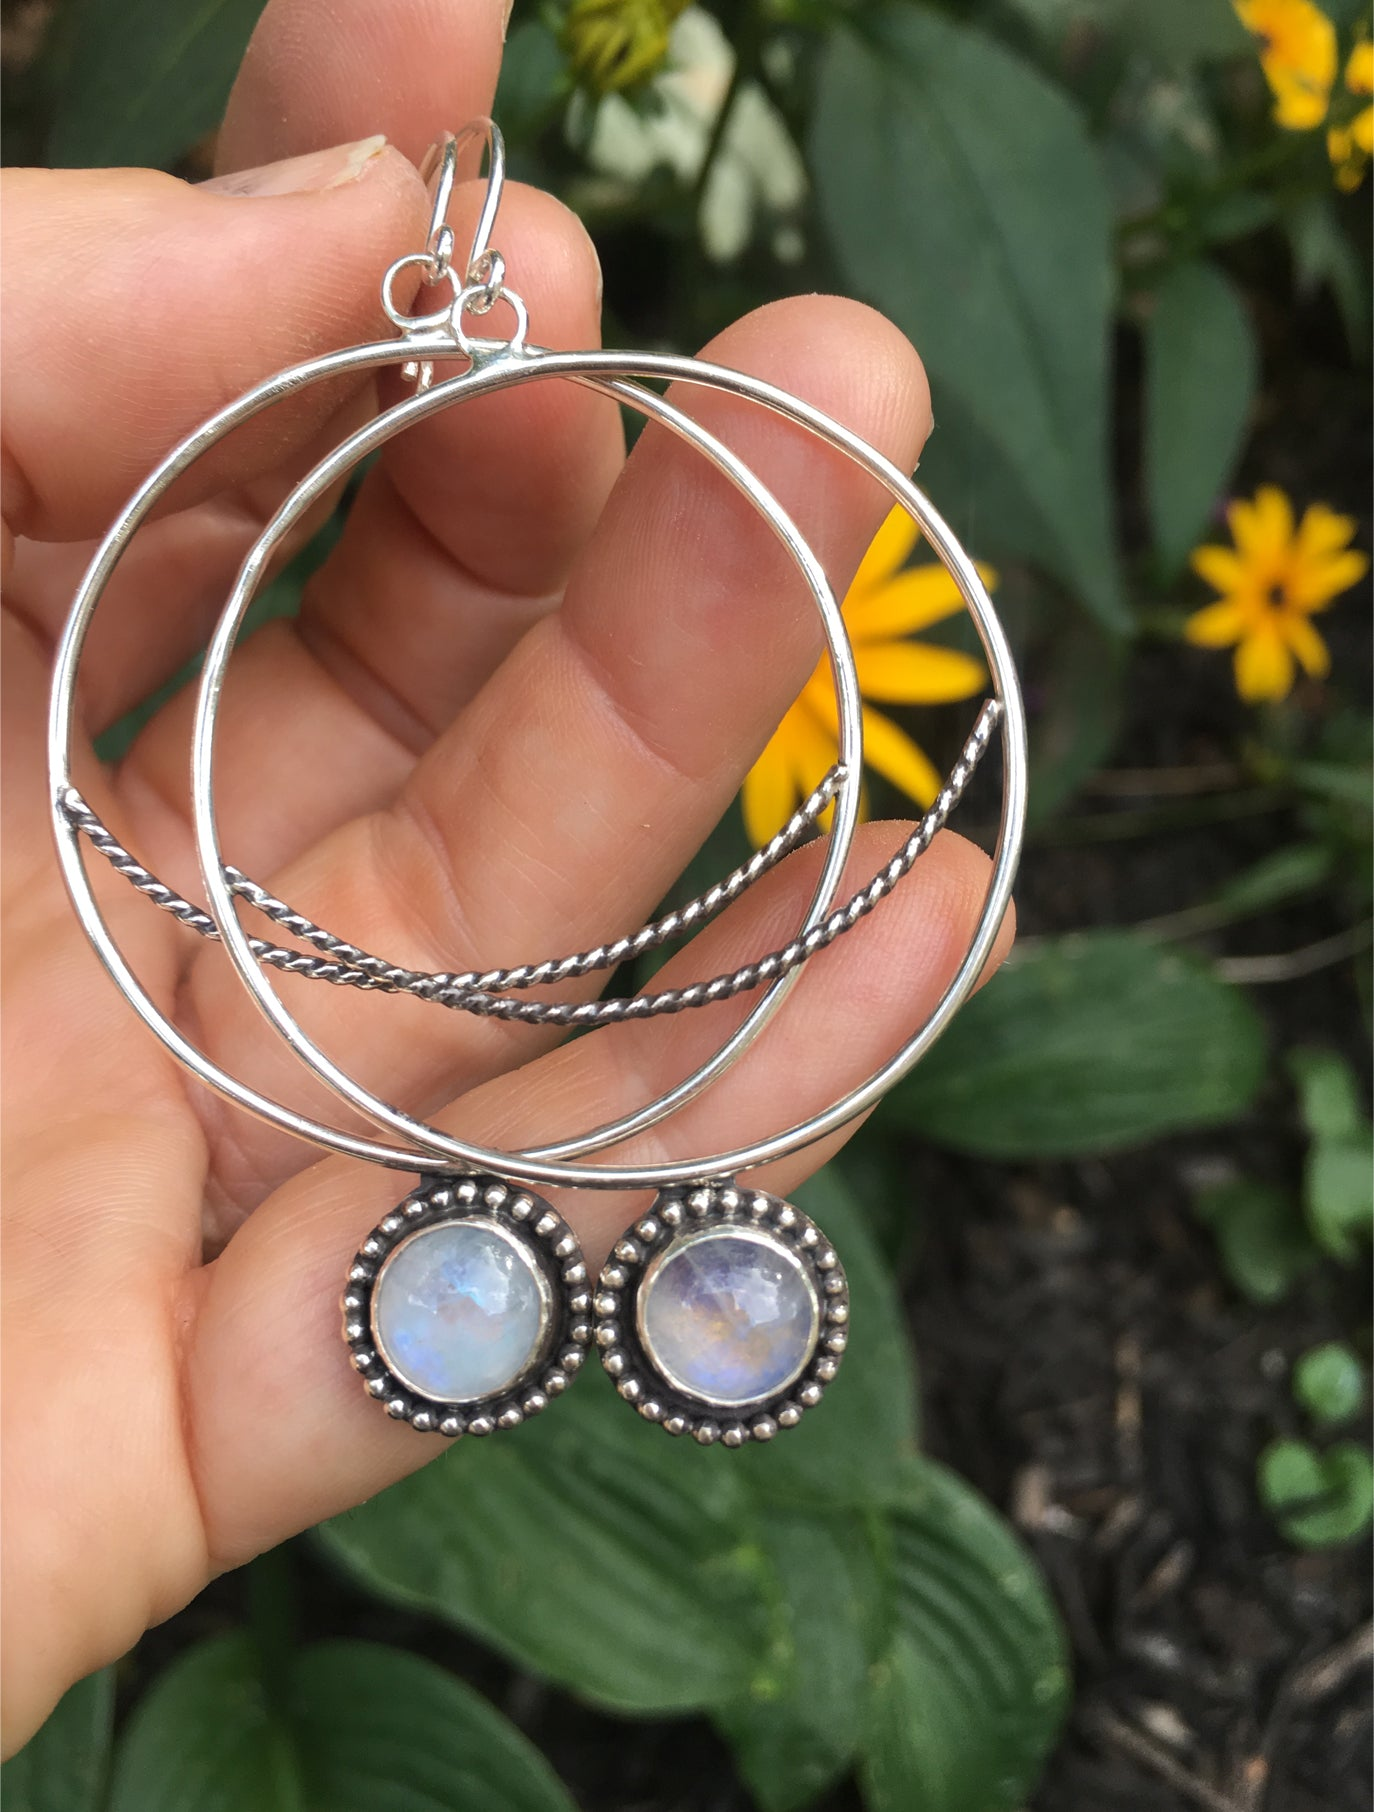 Crescent  Moon Hoops with Rainbow Moonstone Shown in Hand with Flowers in Background